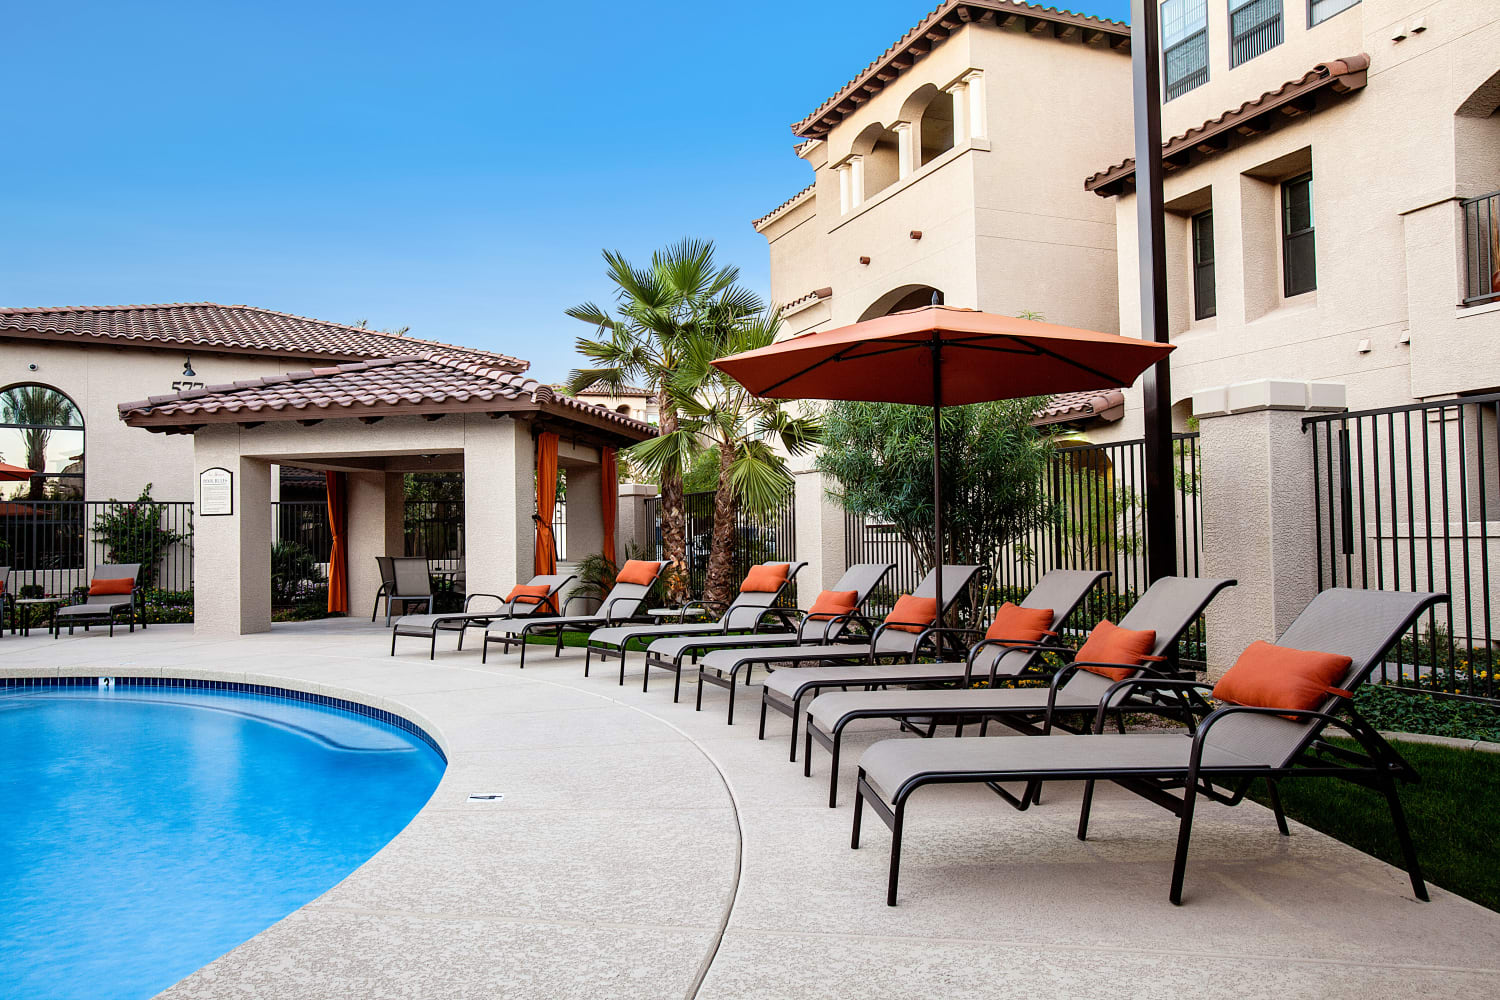 Enjoying sunbathing poolside at San Marquis in Tempe, Arizona